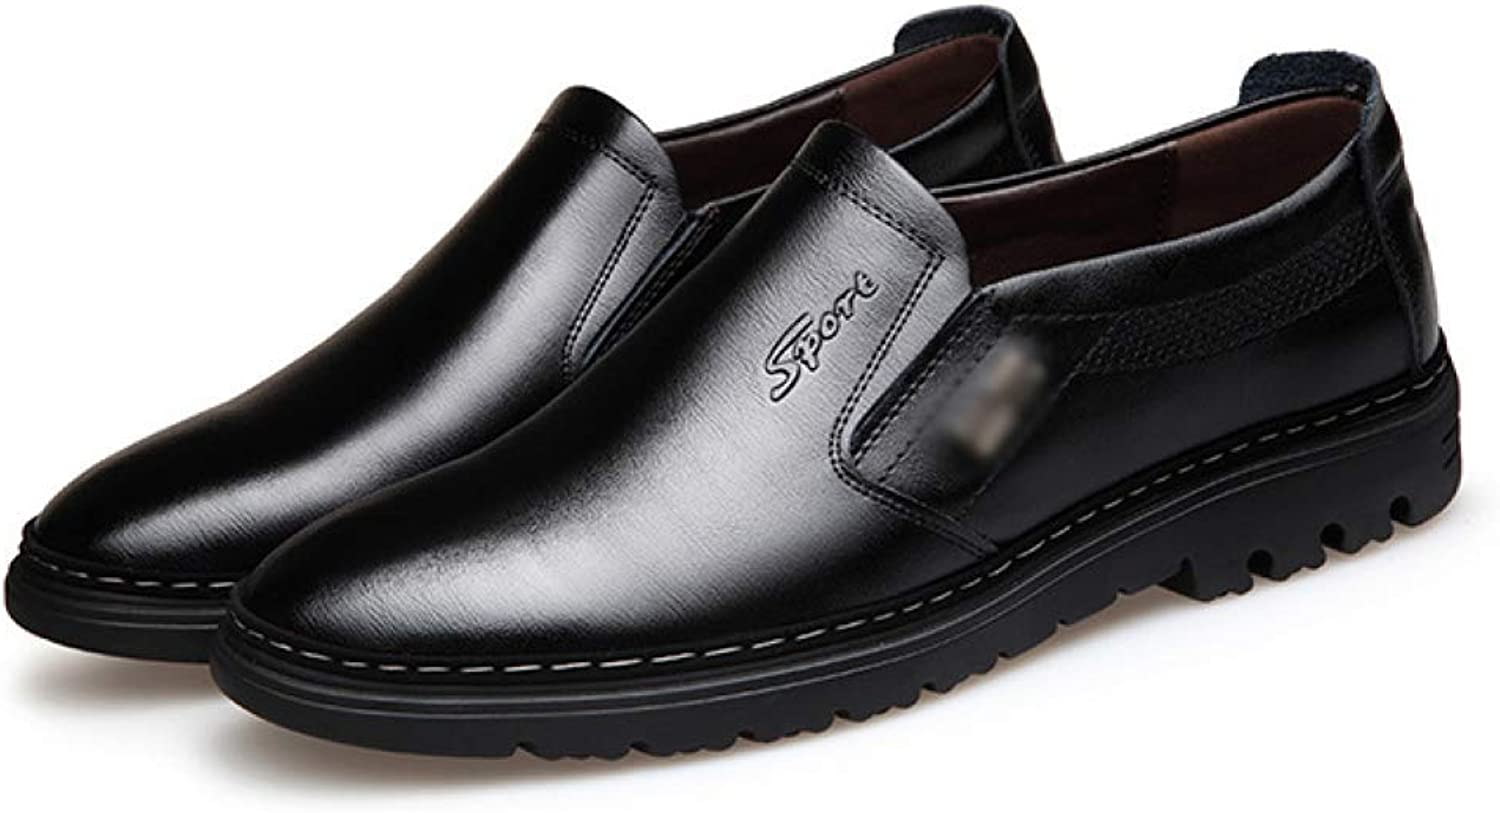 DHFUD Men's shoes Business Leather Casual shoes Comfort Footwear